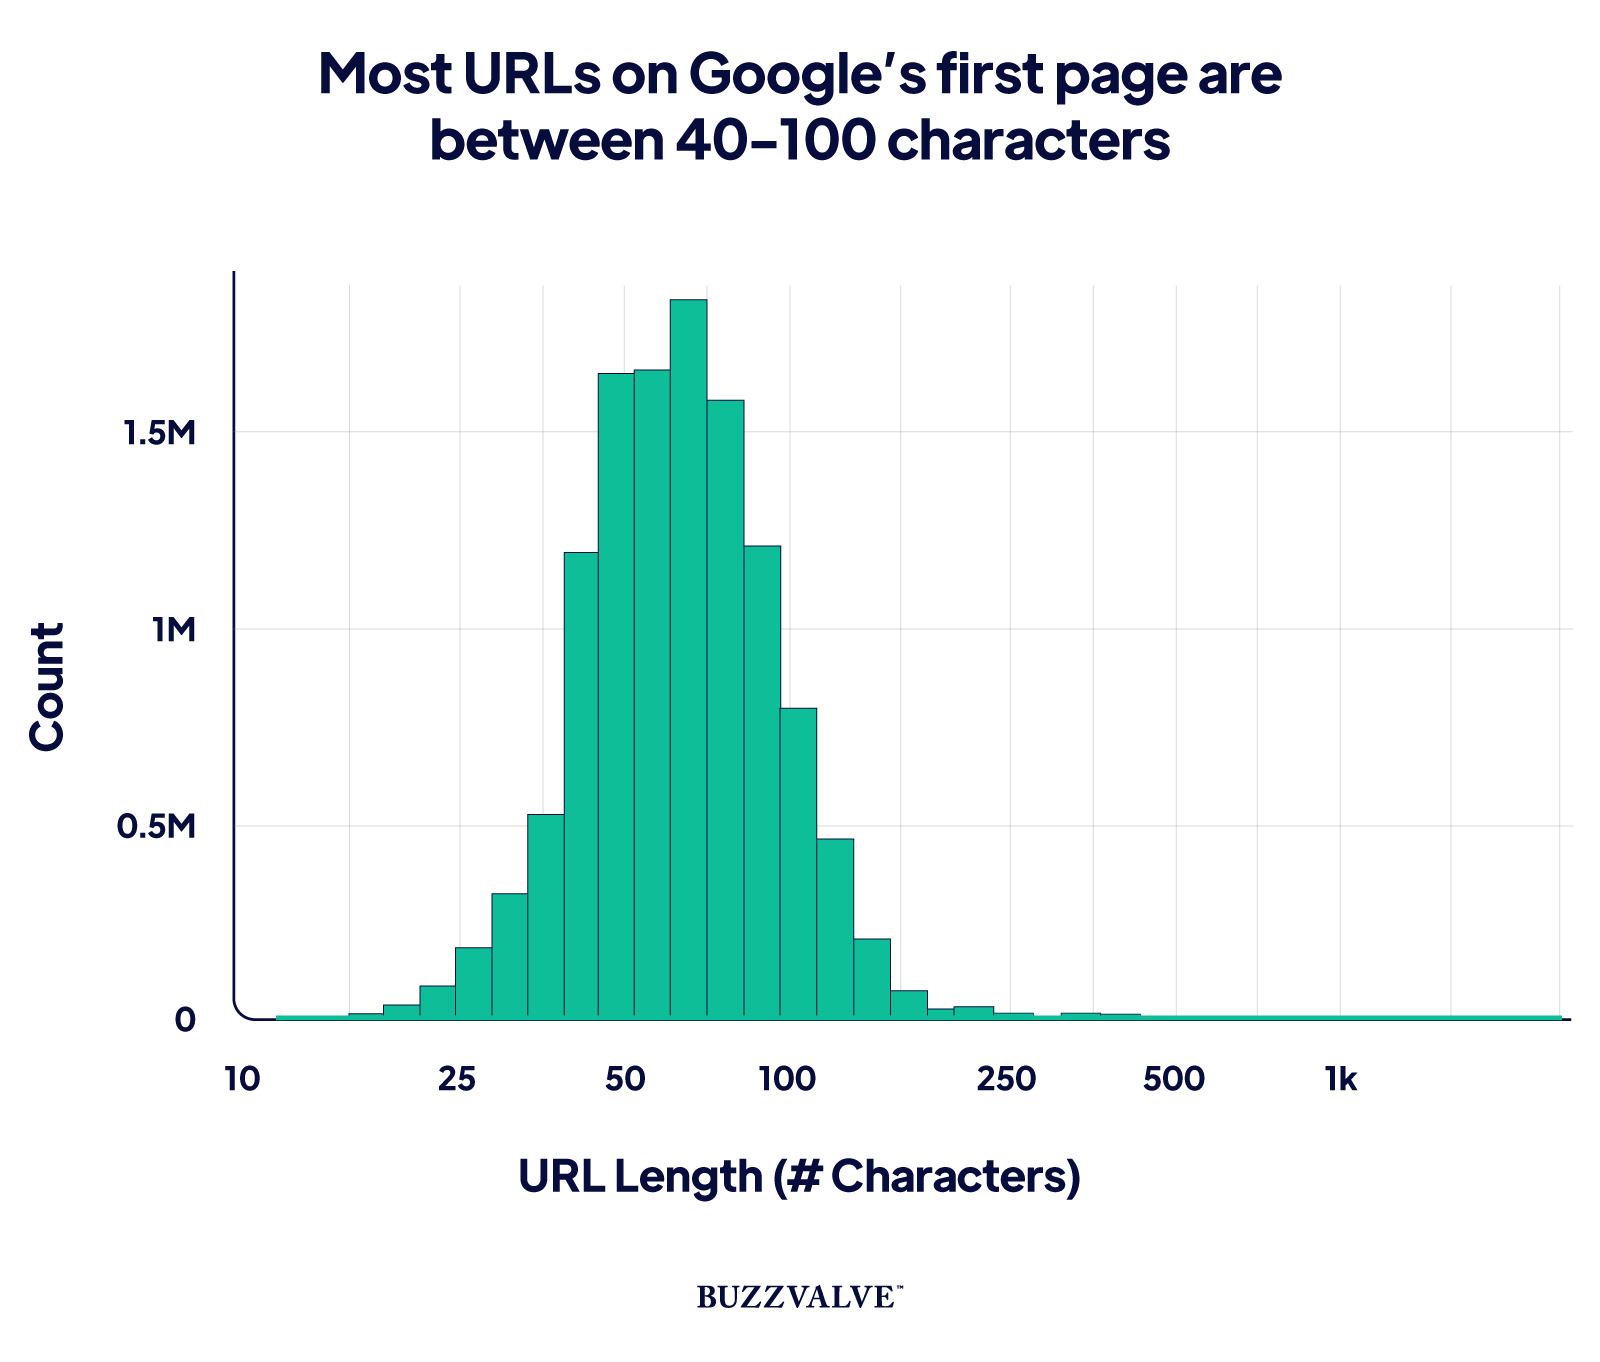 URL length and word count